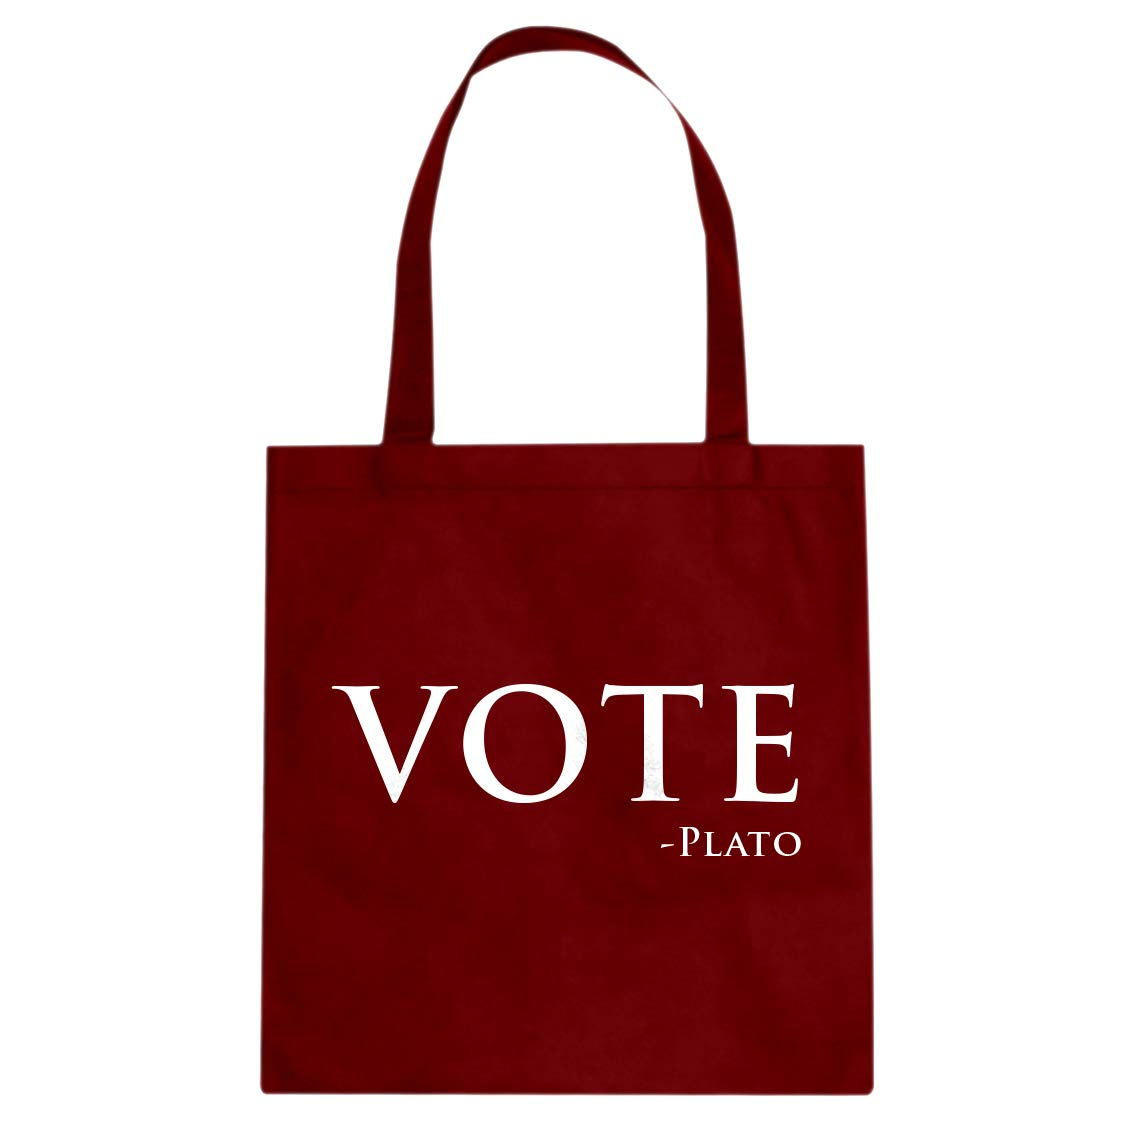 Indica Plateau Vote Plato Cotton Canvas Tote Bag